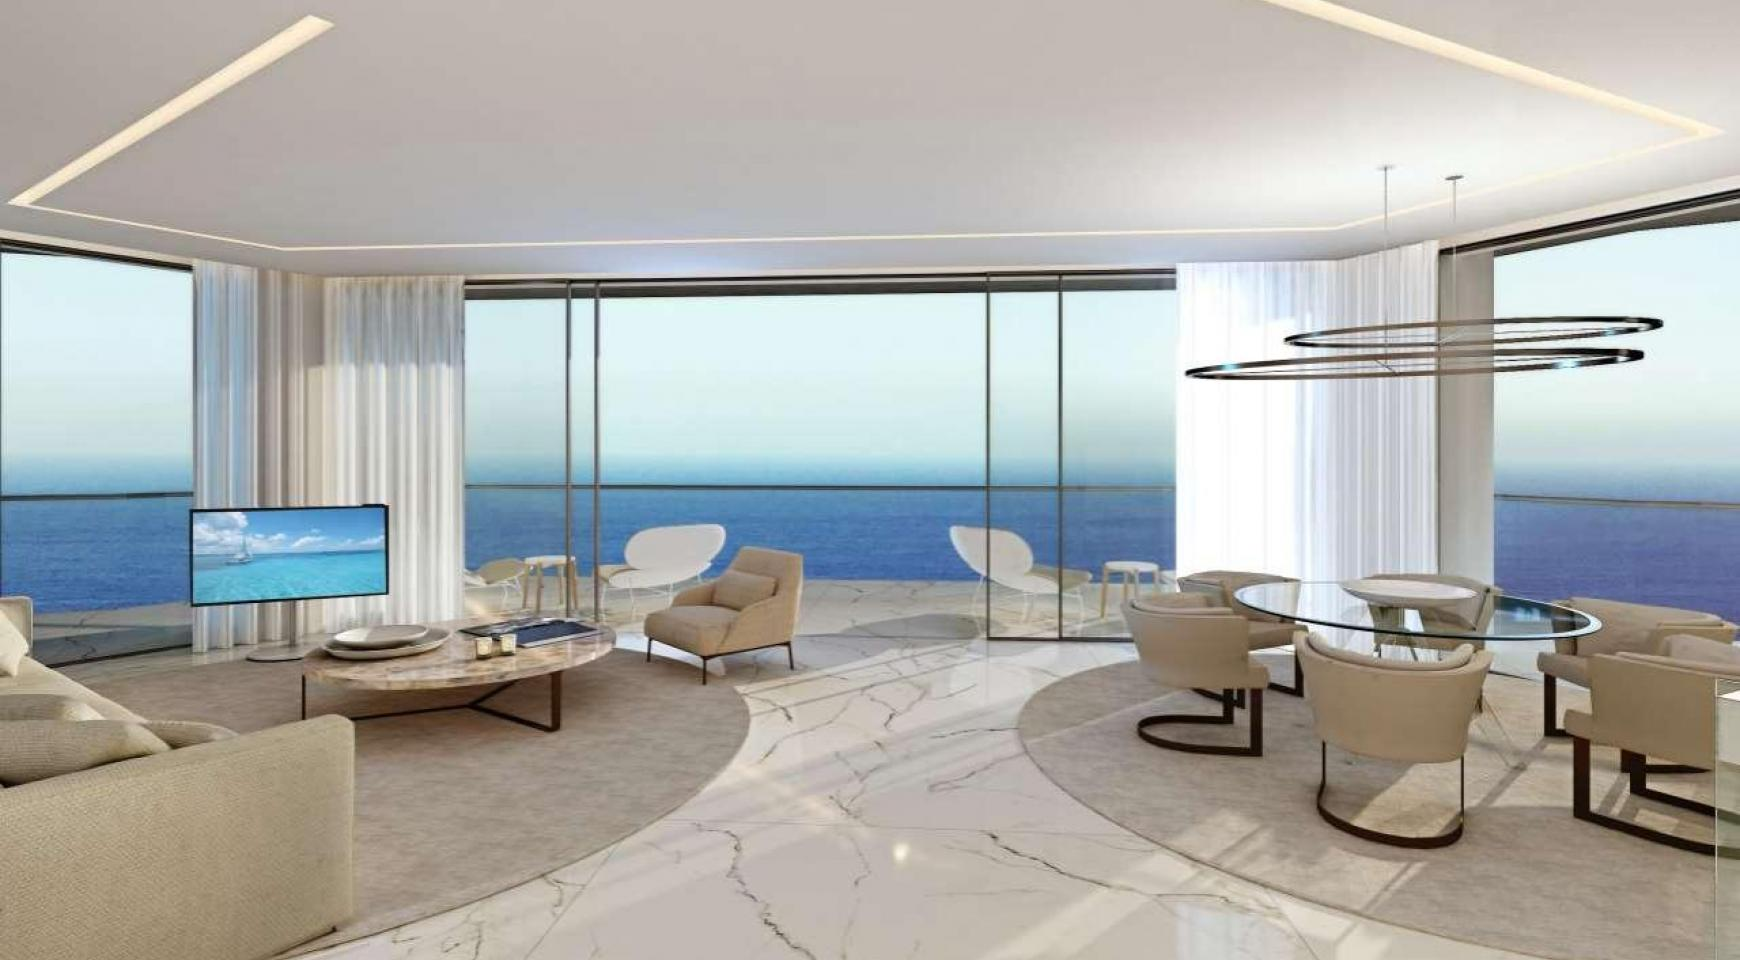 Luxury 2 Bedroom Apartment in a New Project by the Sea in the City Centre - 7